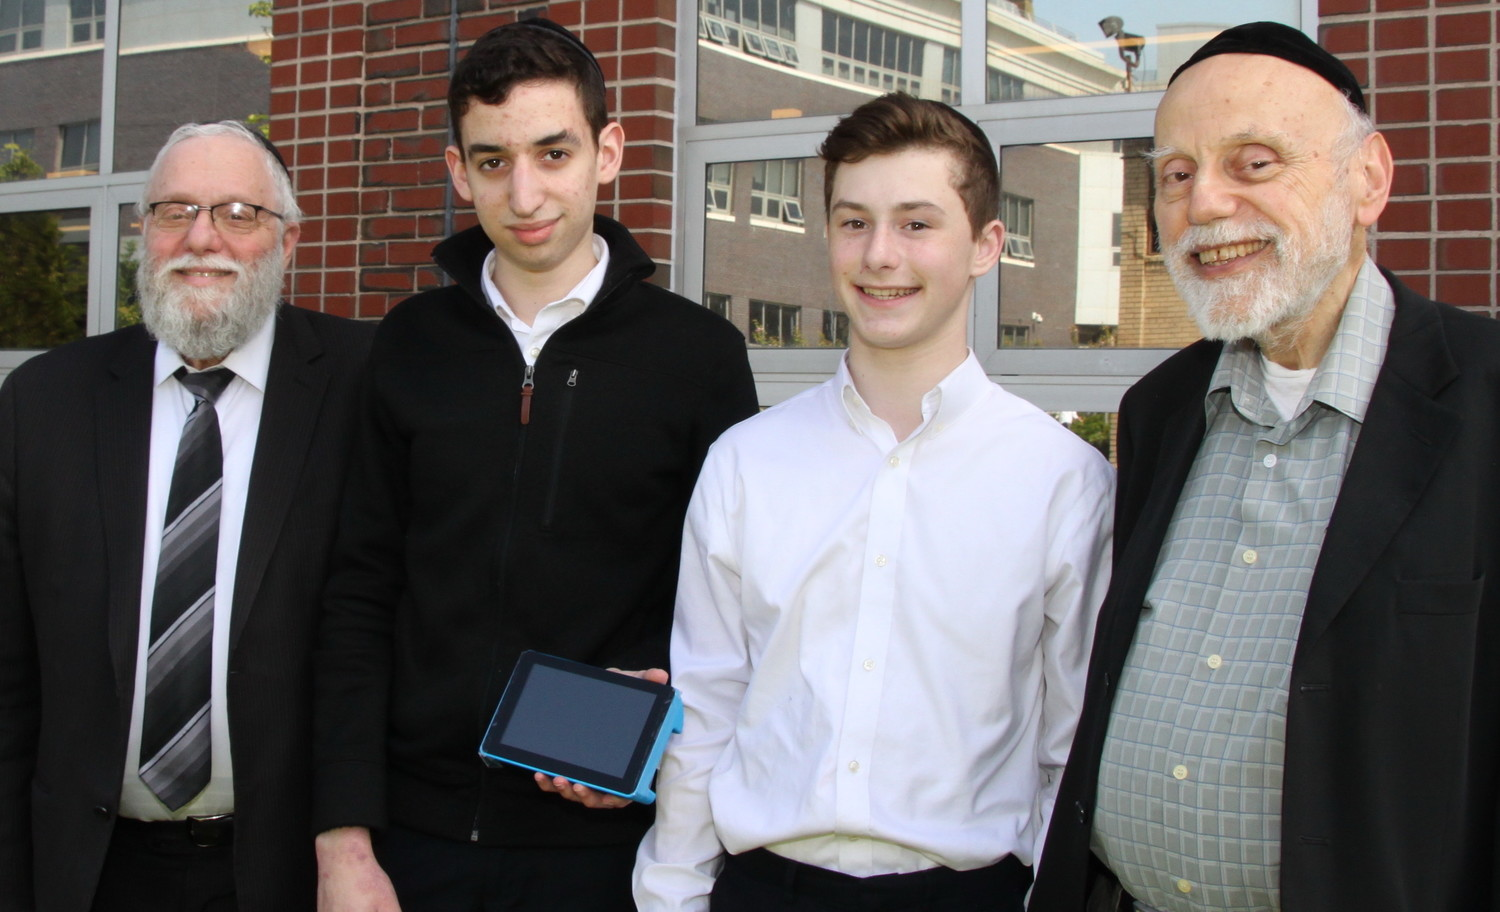 Darchei Torah's Dan Yaakov Honig and Yisroel Rosenberg, two Mesivta Chaim Shlomo students who won a prize at the CIJE competition, are flanked by Rabbi Menachem Gold, principal (left), and Dr. Don Engelberg, physics instructor.